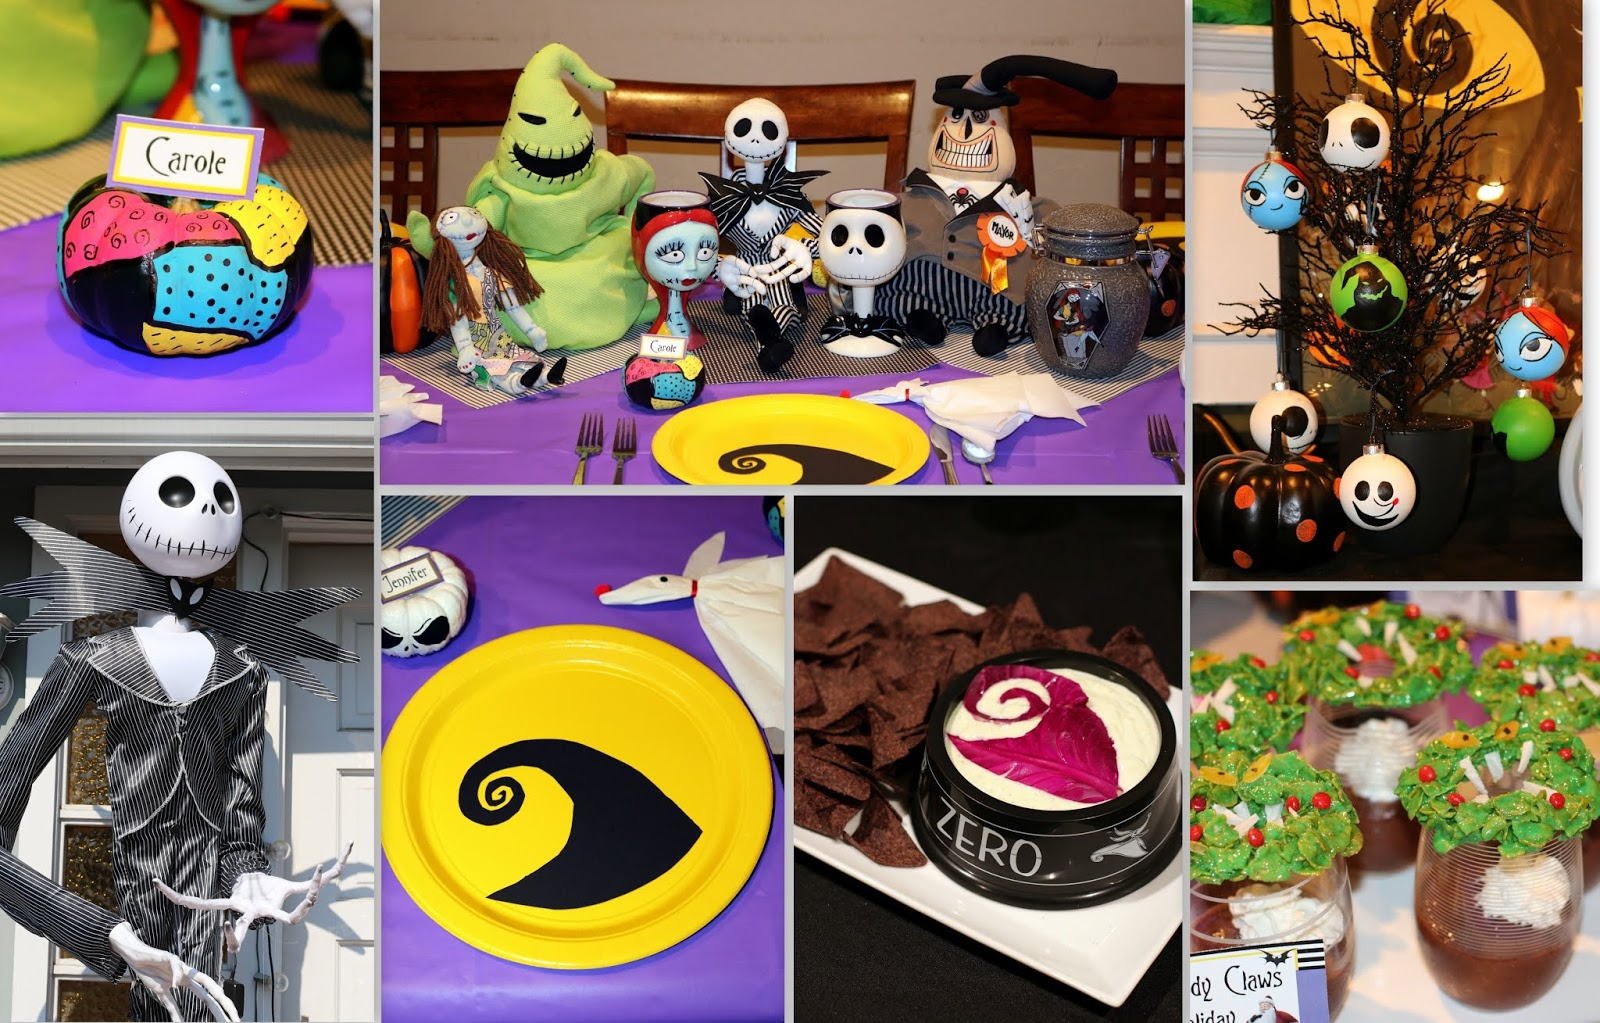 Invite and Delight: The Nightmare Before Christmas